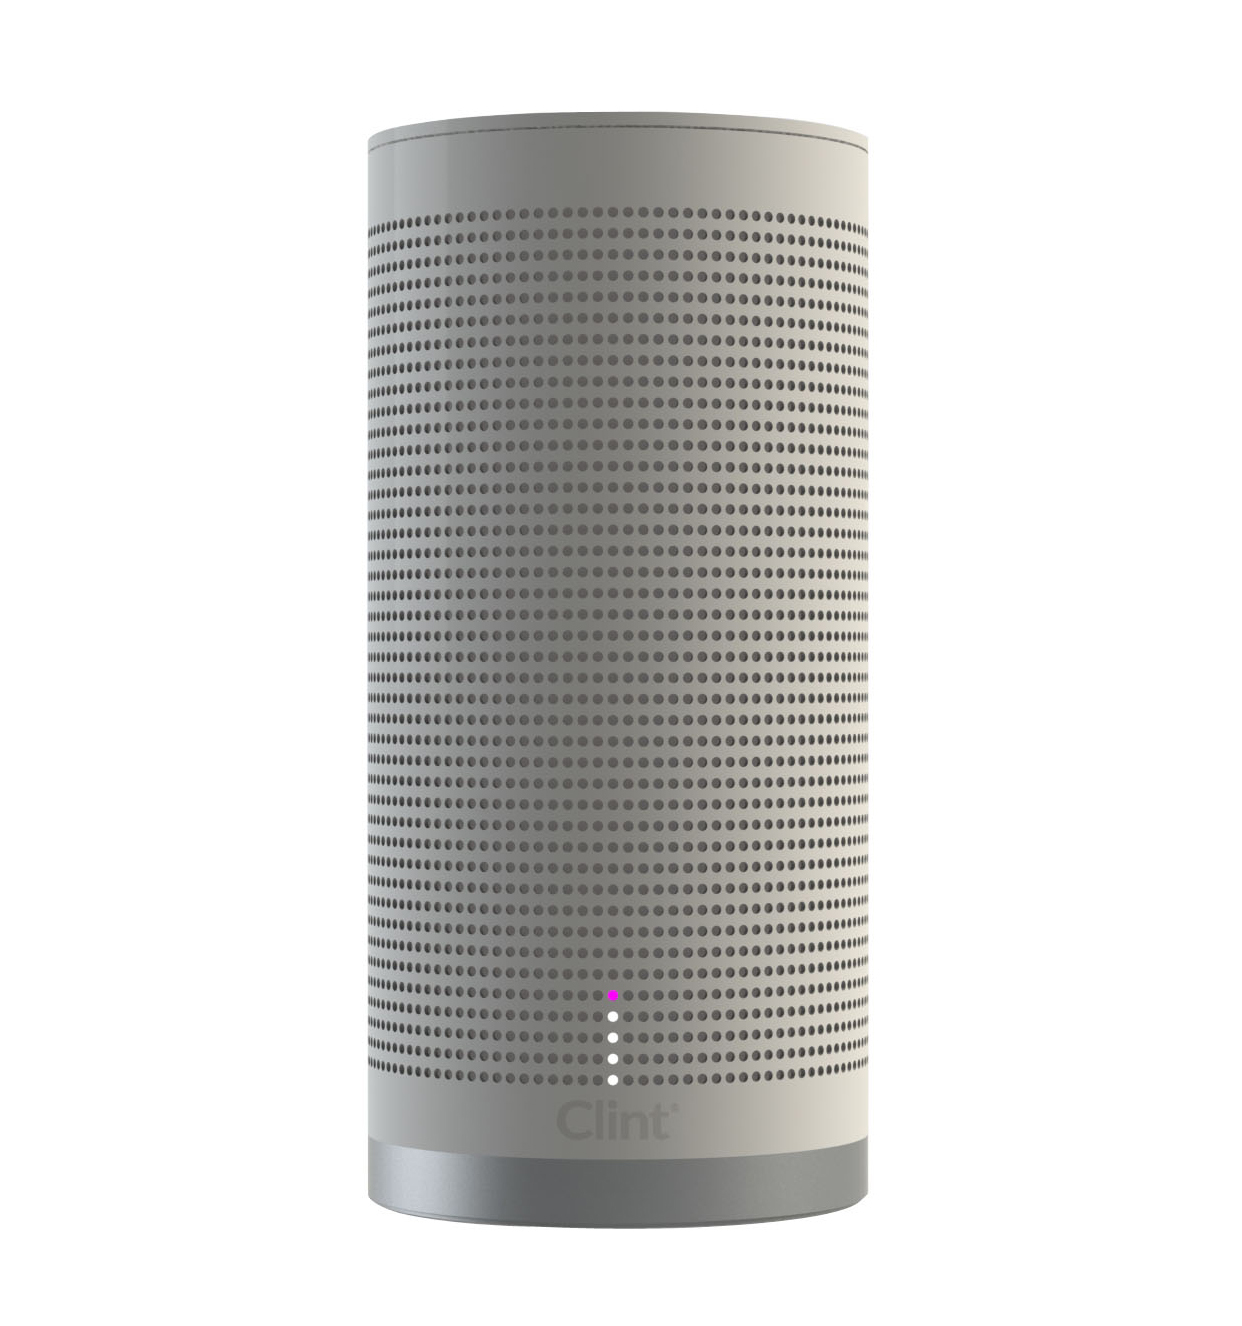 CLINT CLINT-FR14B-W FREYA MONO PORTABLE SPEAKER 7W WHITE